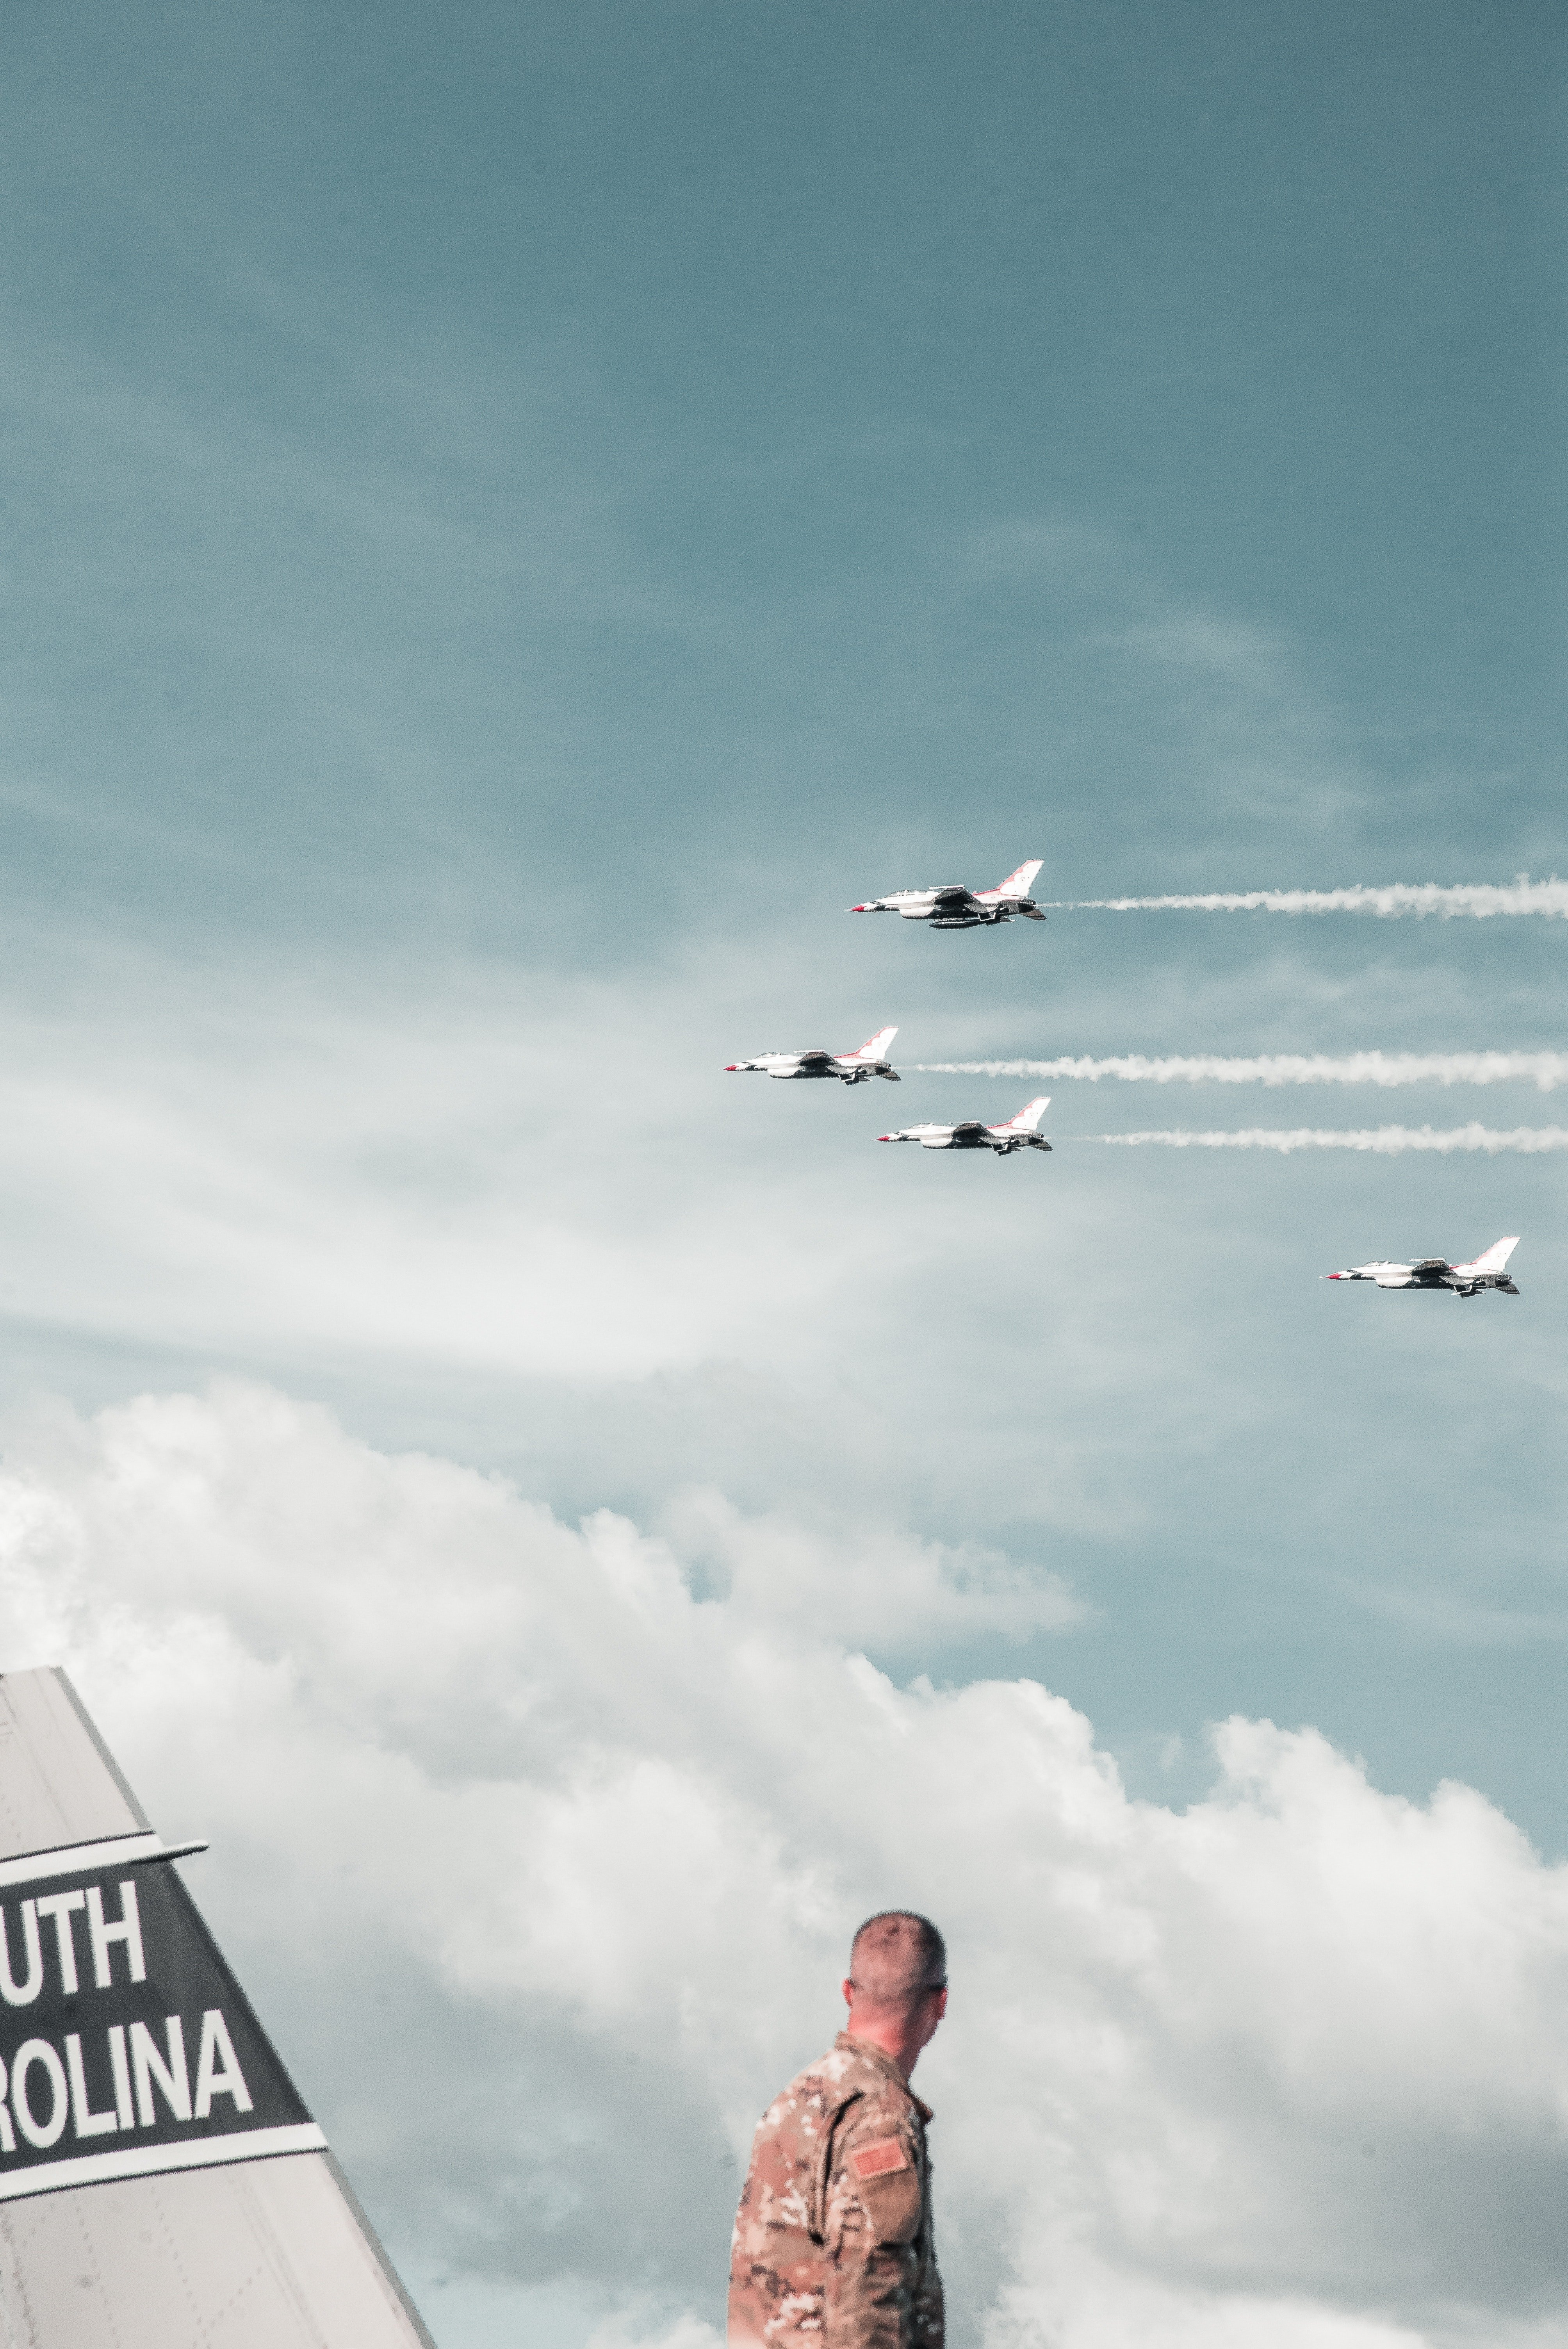 Pictured - A soldier looking over at four fighting jets flying | Source: Pexels